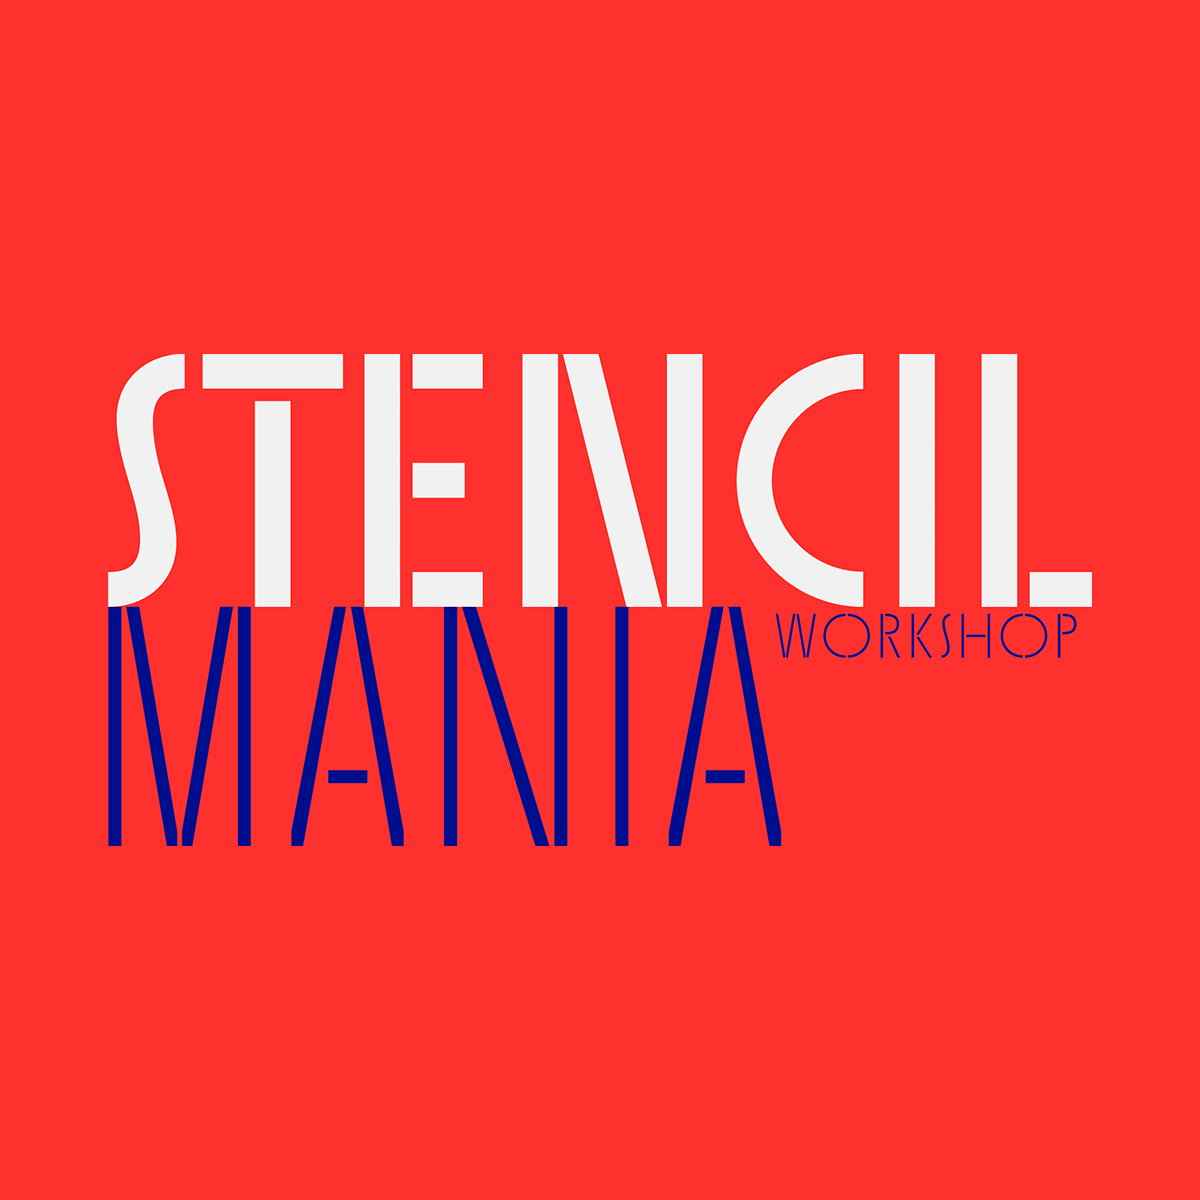 Stencilmania Workshop - Understanding Type Design as a Tool for Graphic Designers